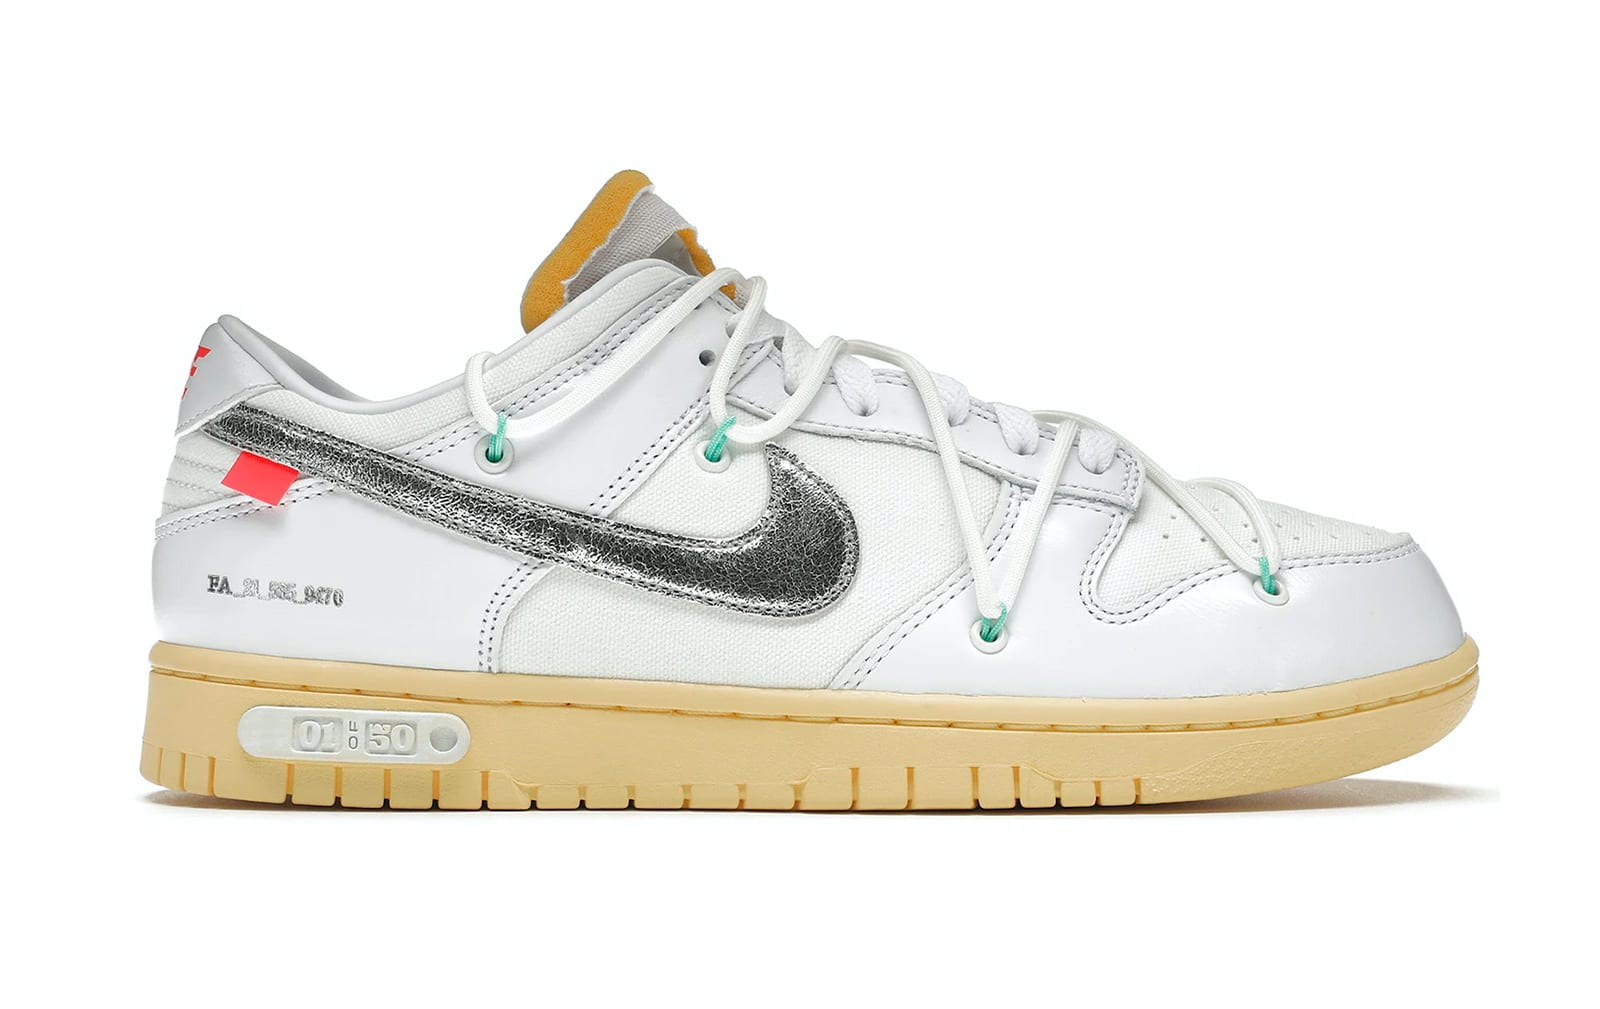 Nike Dunk Low Off-White Lot 01